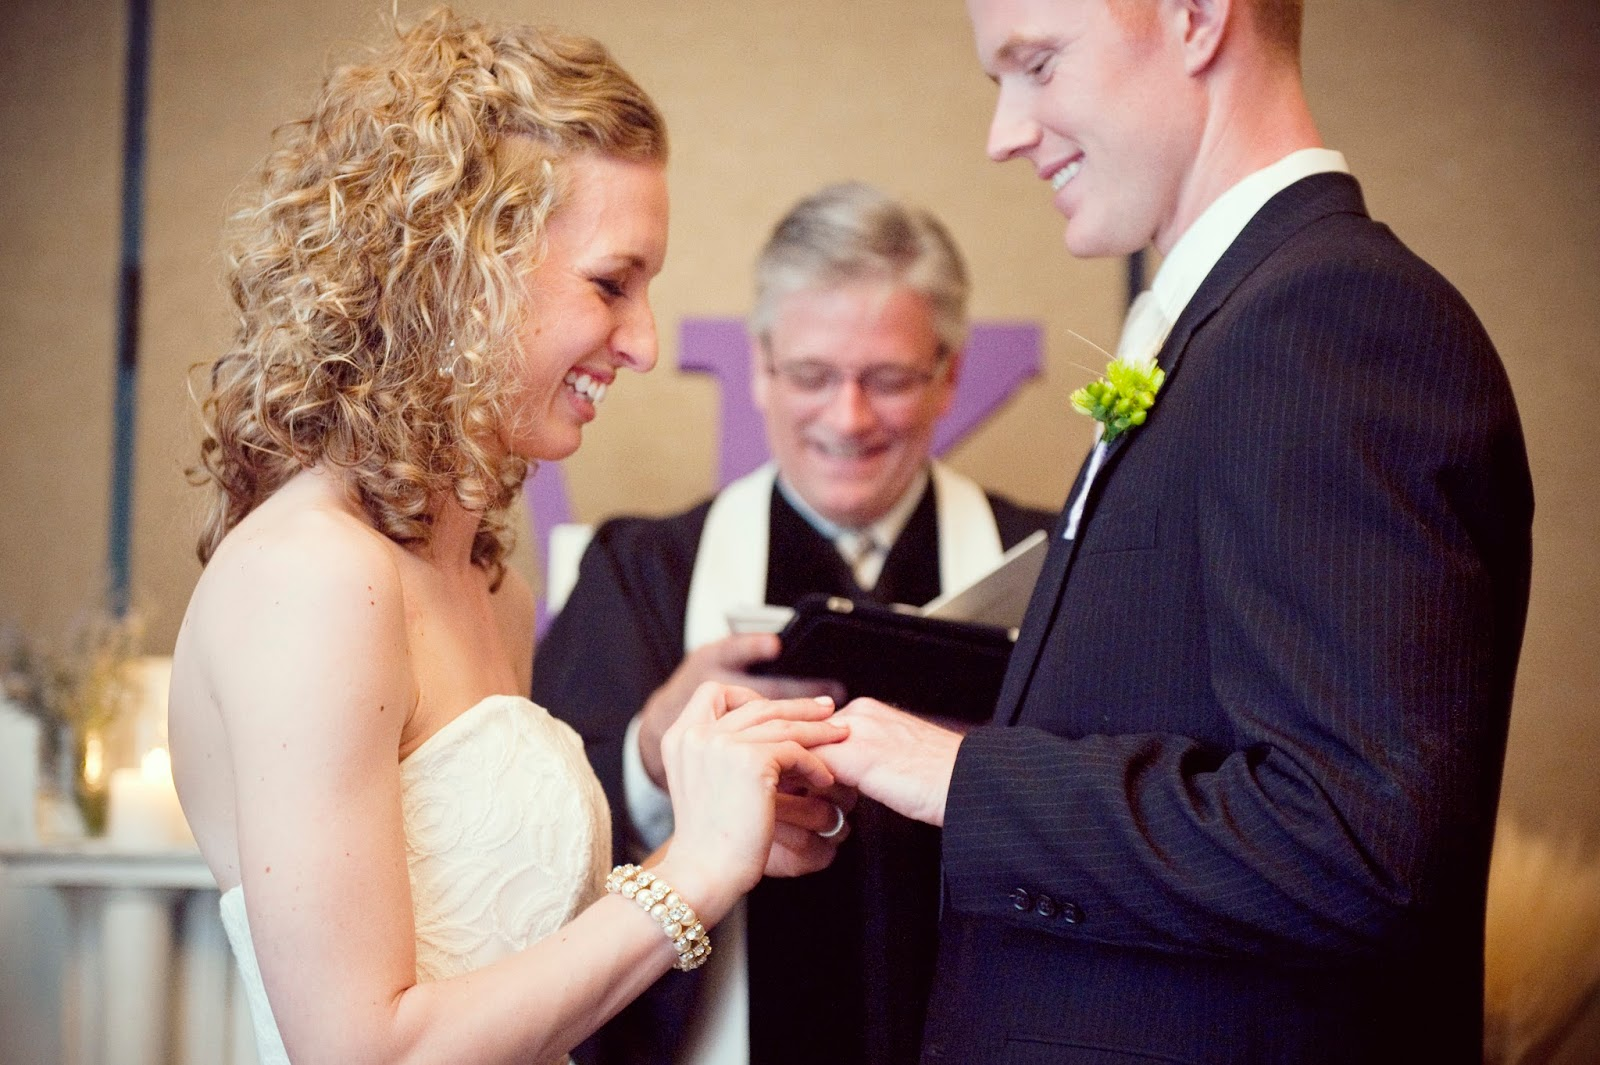 exchange rings during wedding ceremony